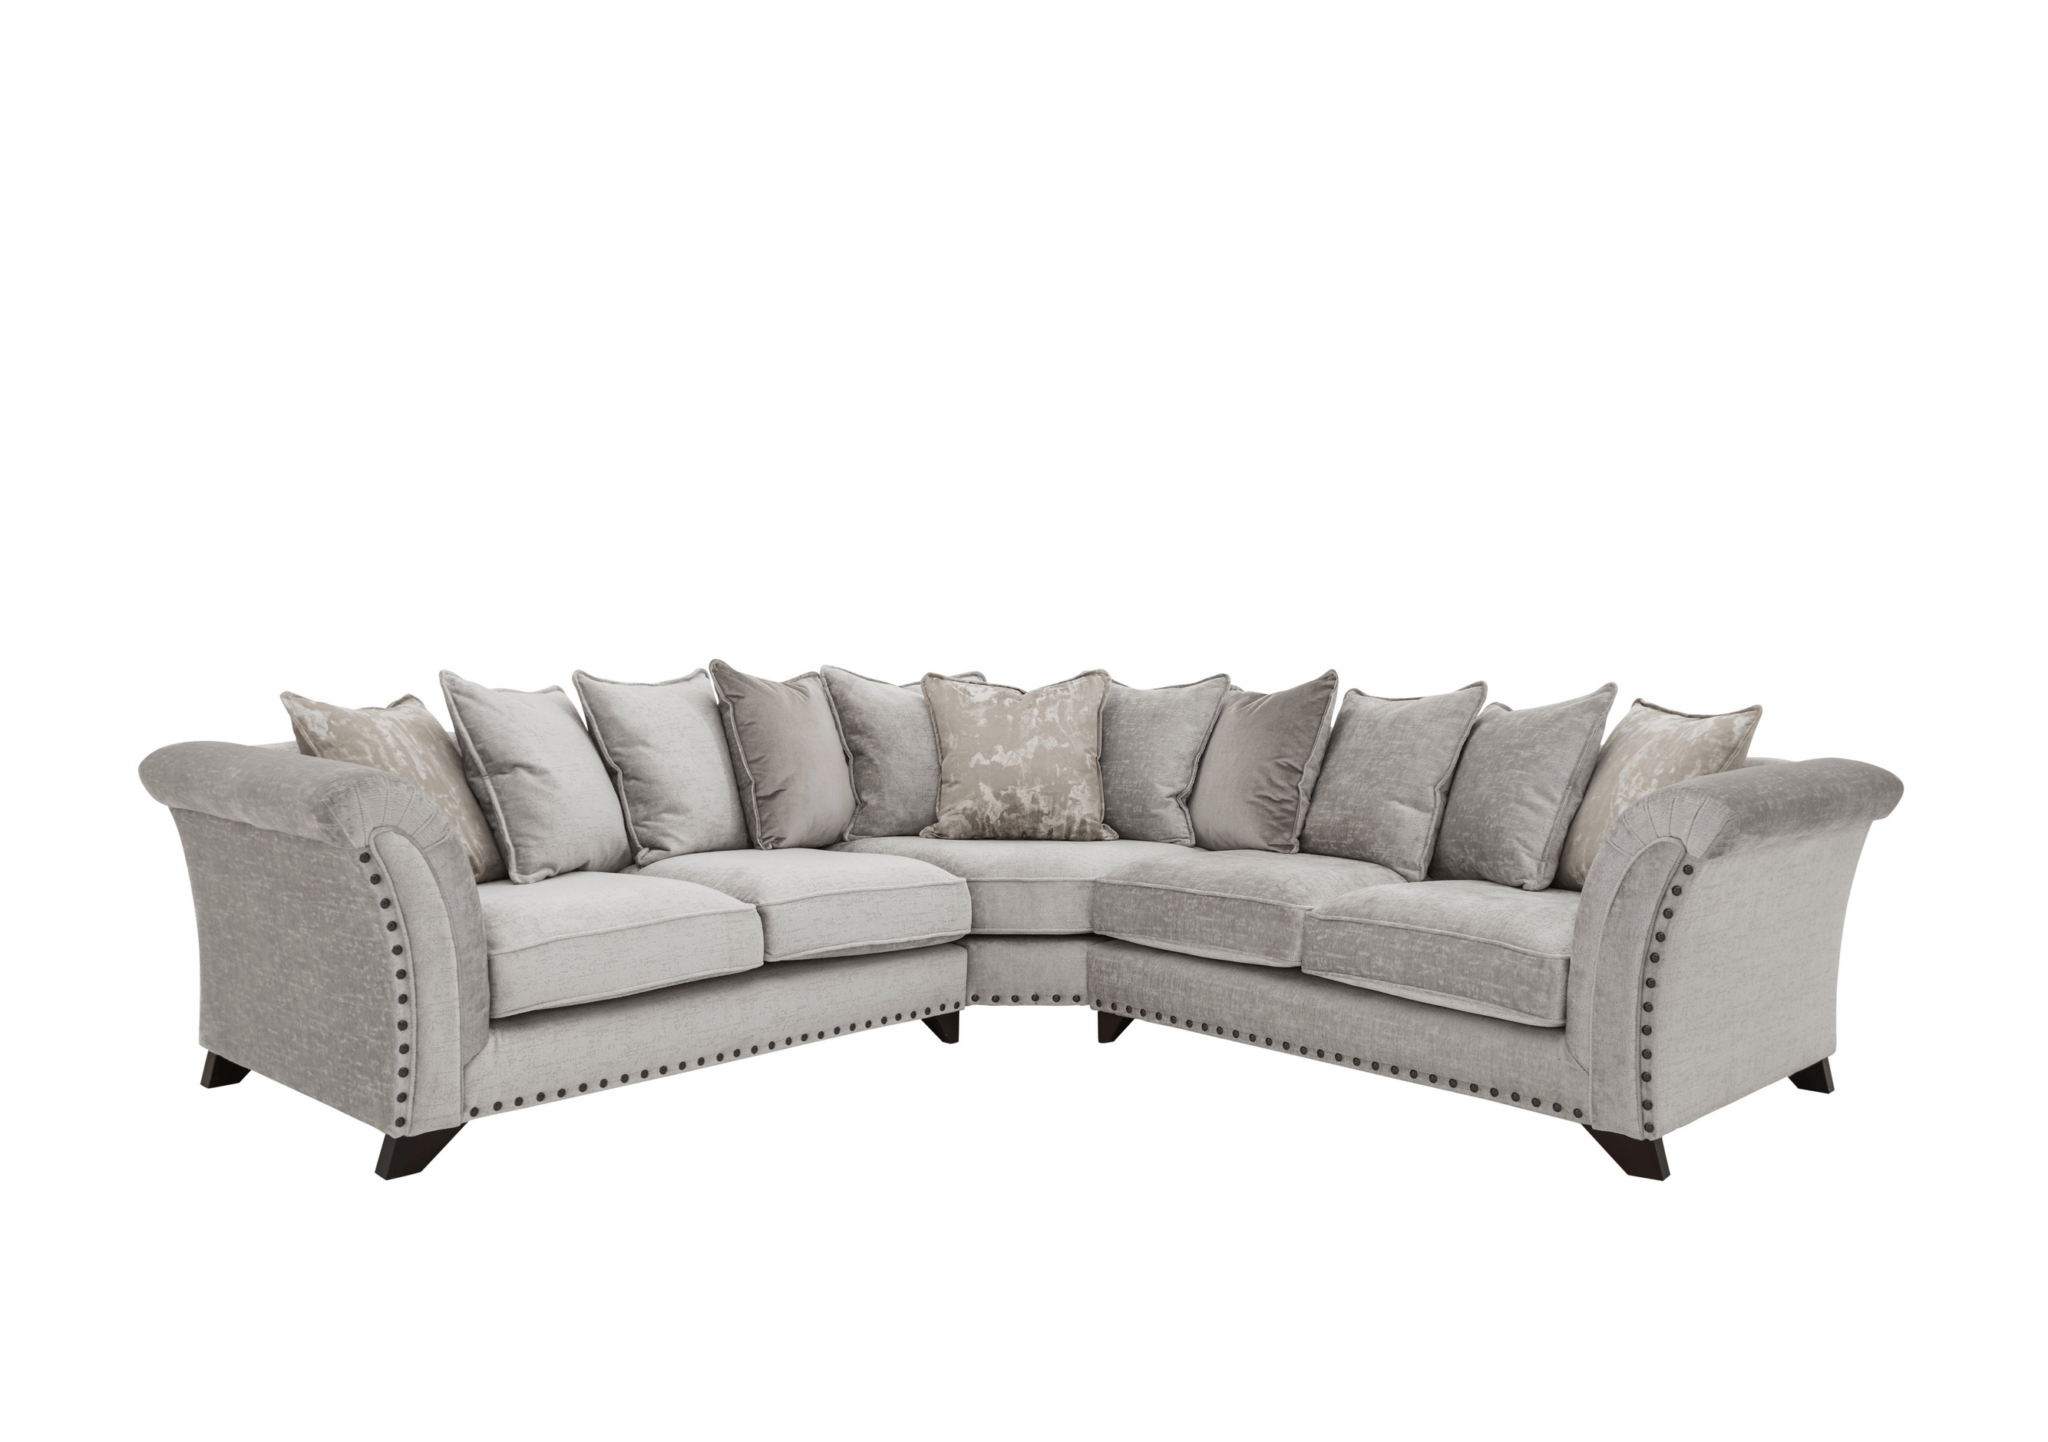 KNF Holly Large Pillow Back Fabric Corner Sofa with Studs